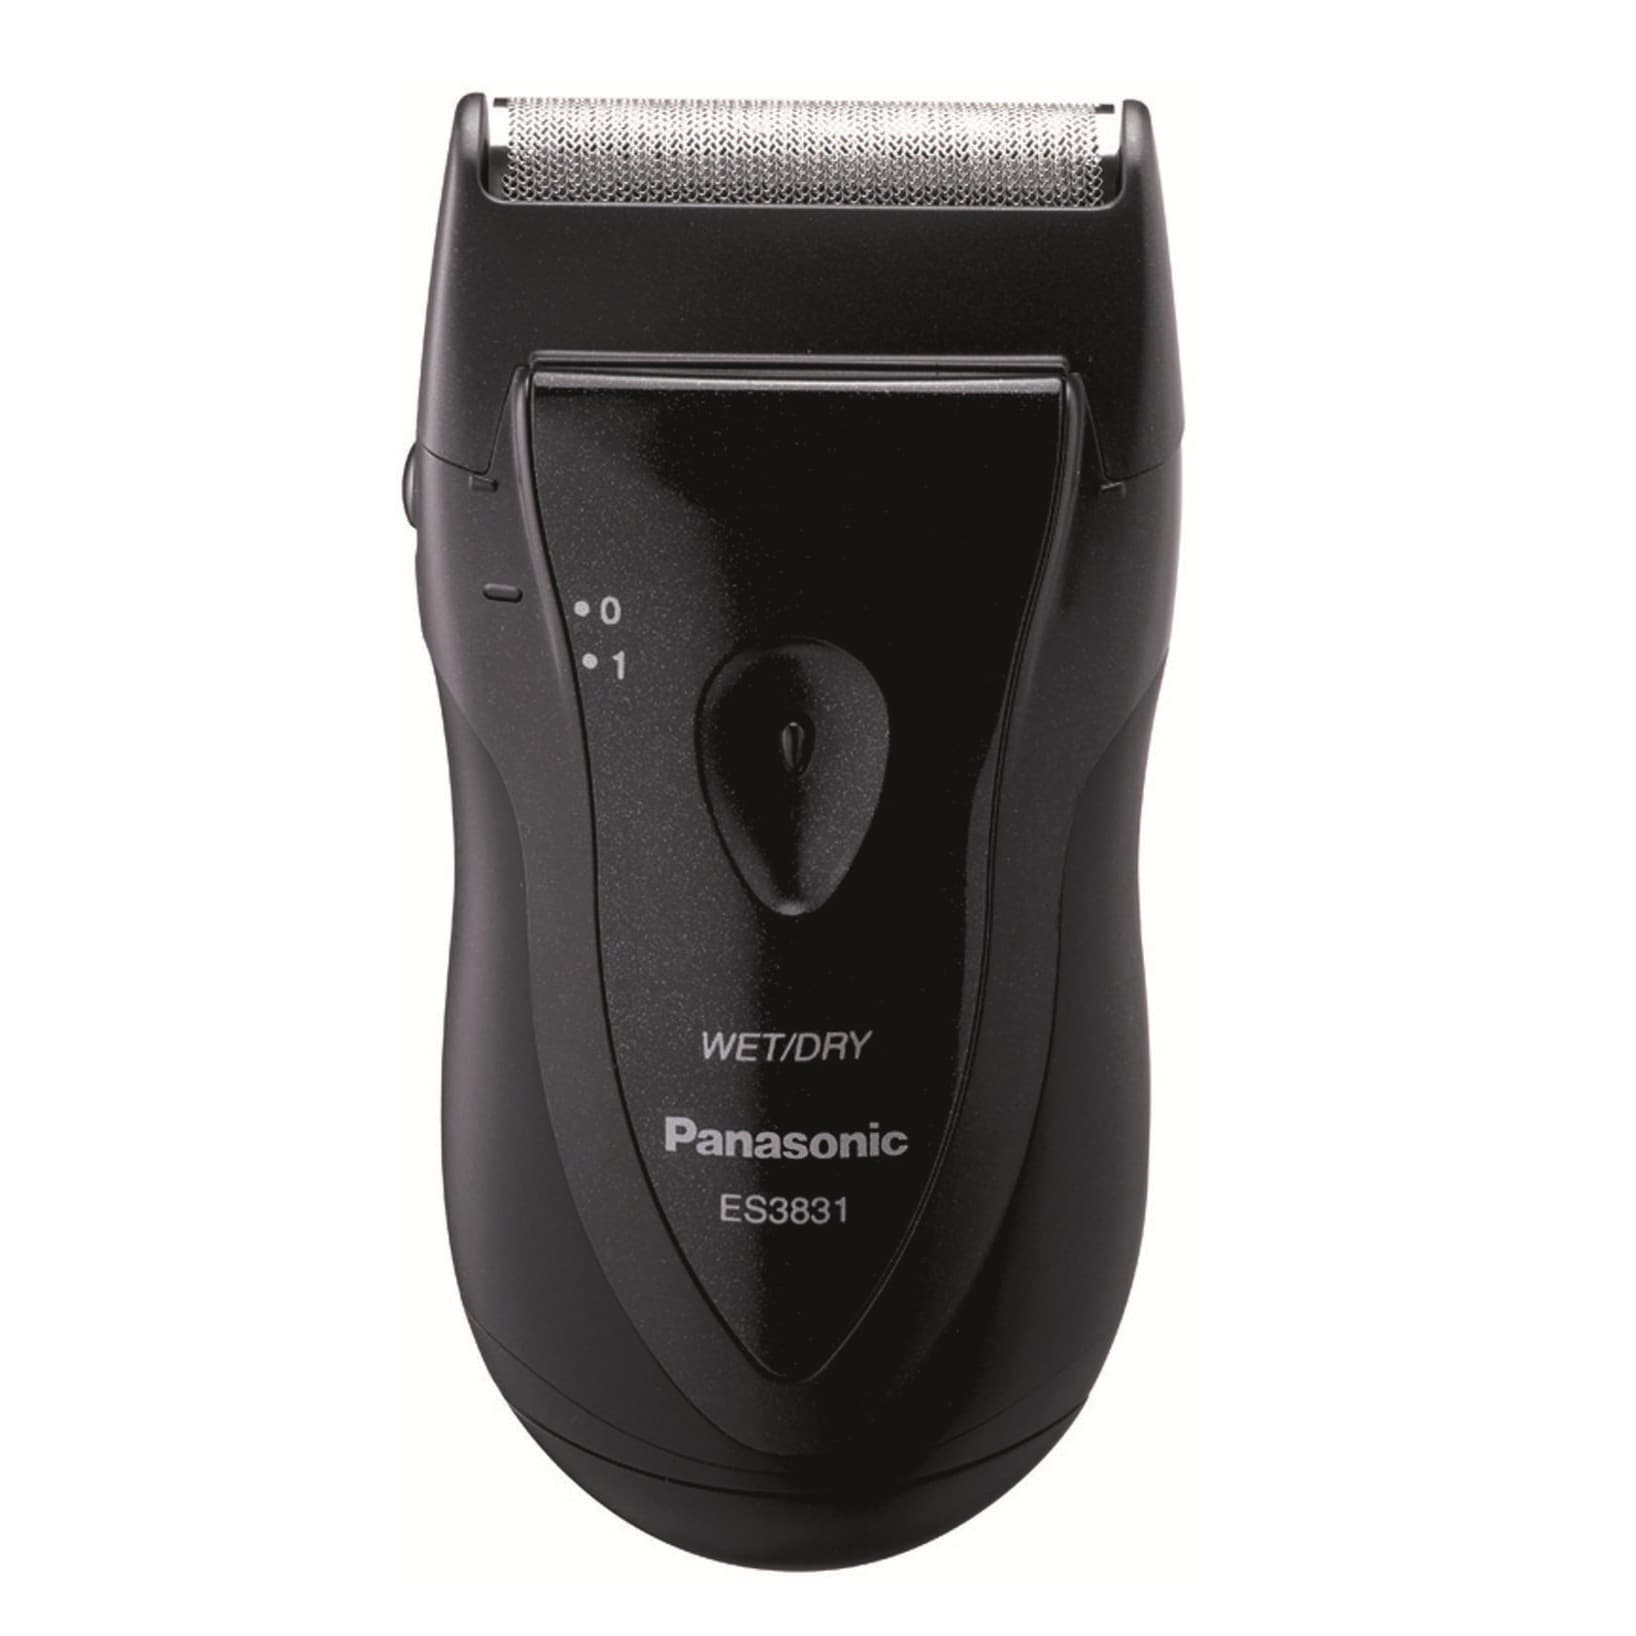 Panasonic Pro-curve Travel Shaver, Silver stainless steel